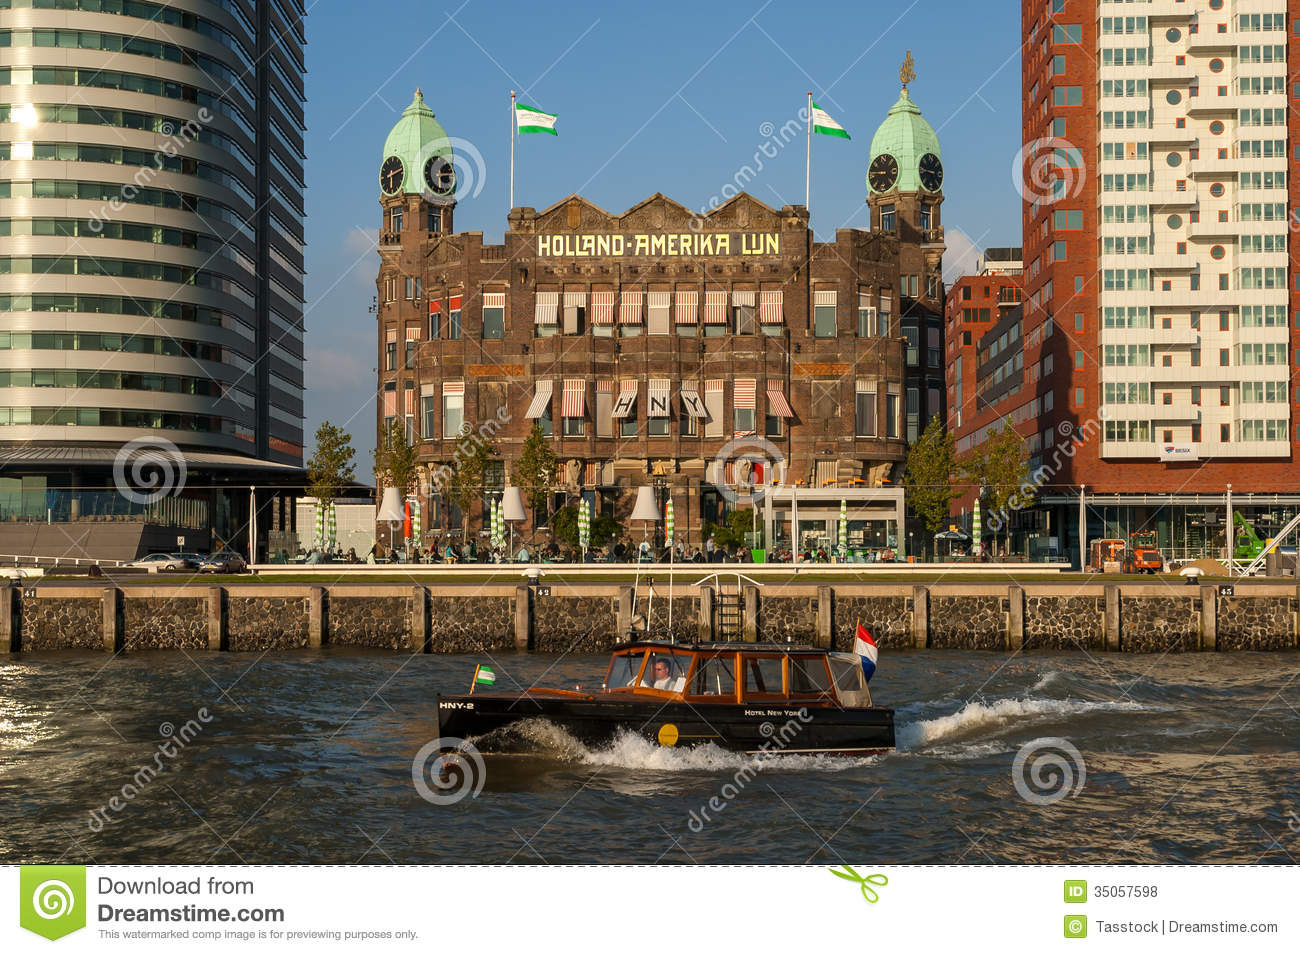 hotel new york in rotterdam netherlands editorial stock photo image of europe. Black Bedroom Furniture Sets. Home Design Ideas